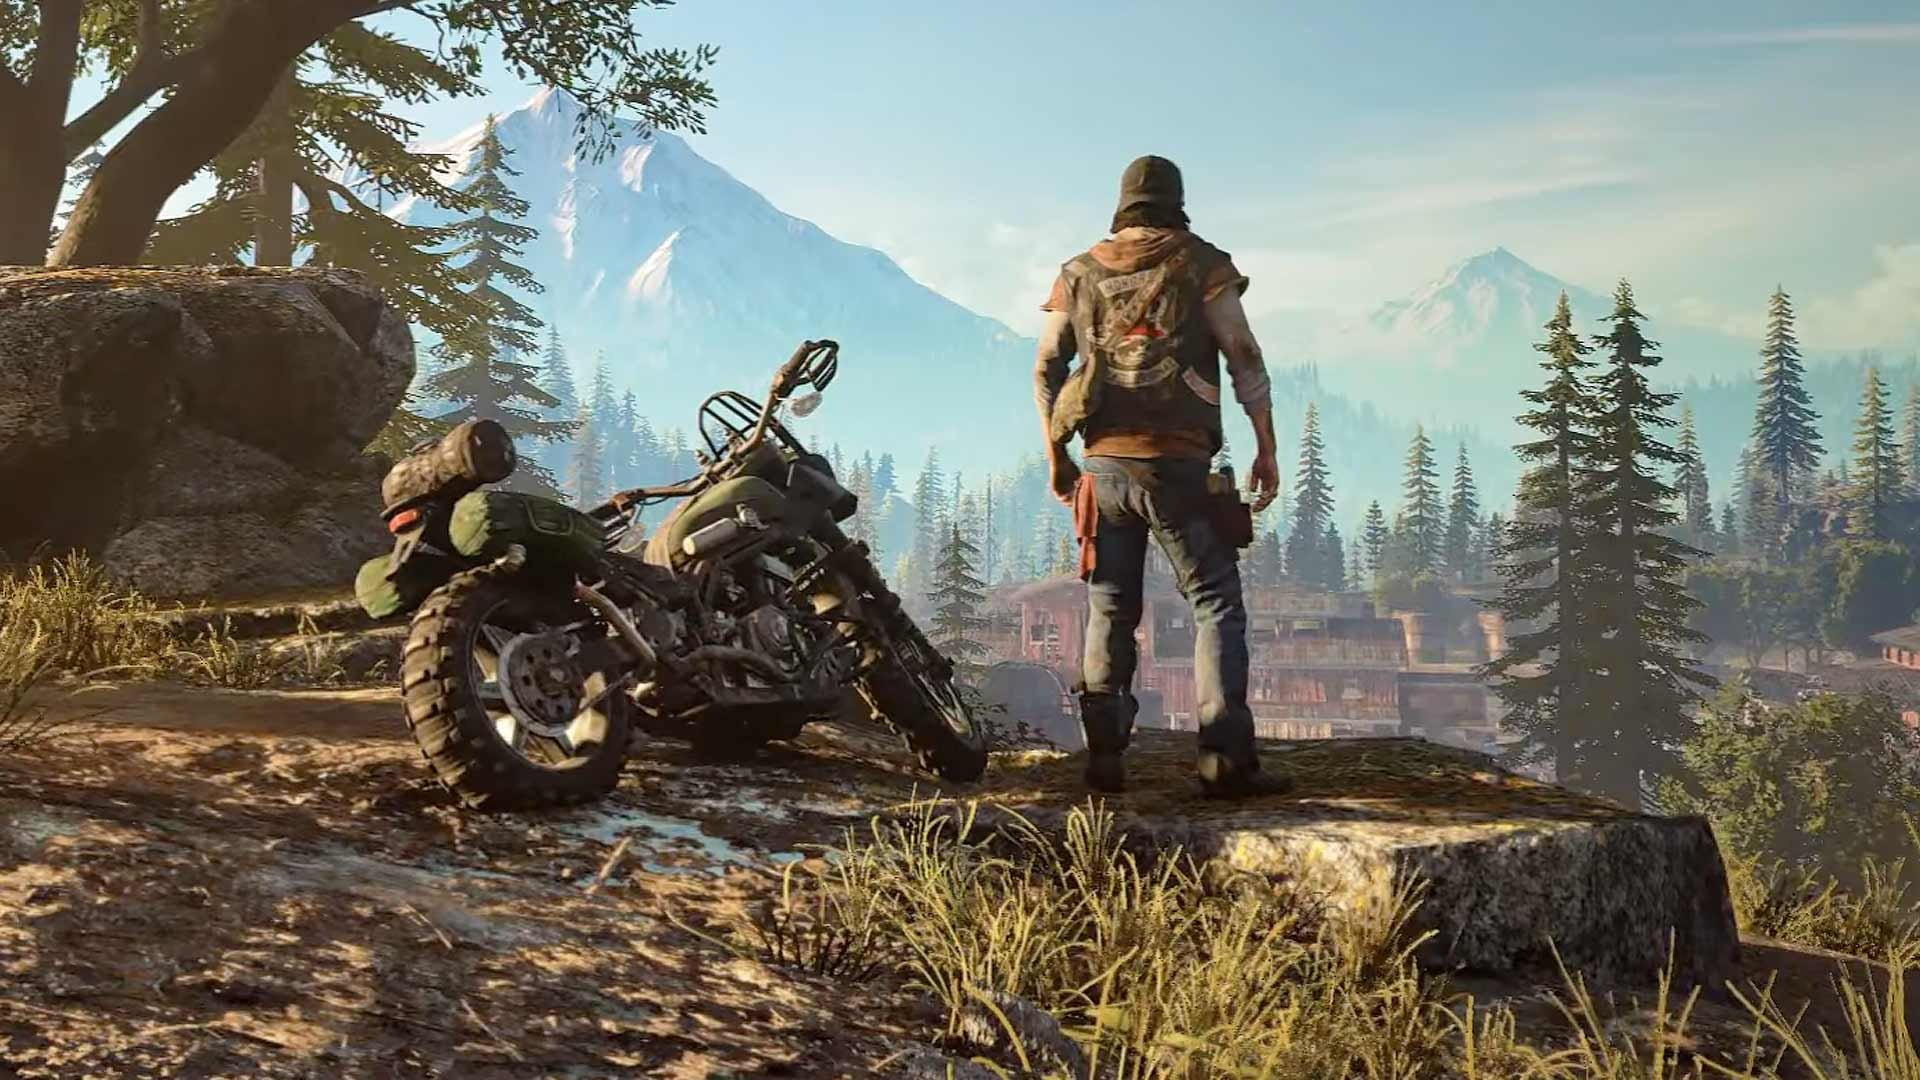 Ps4 Exclusive Games 2019 | Games World